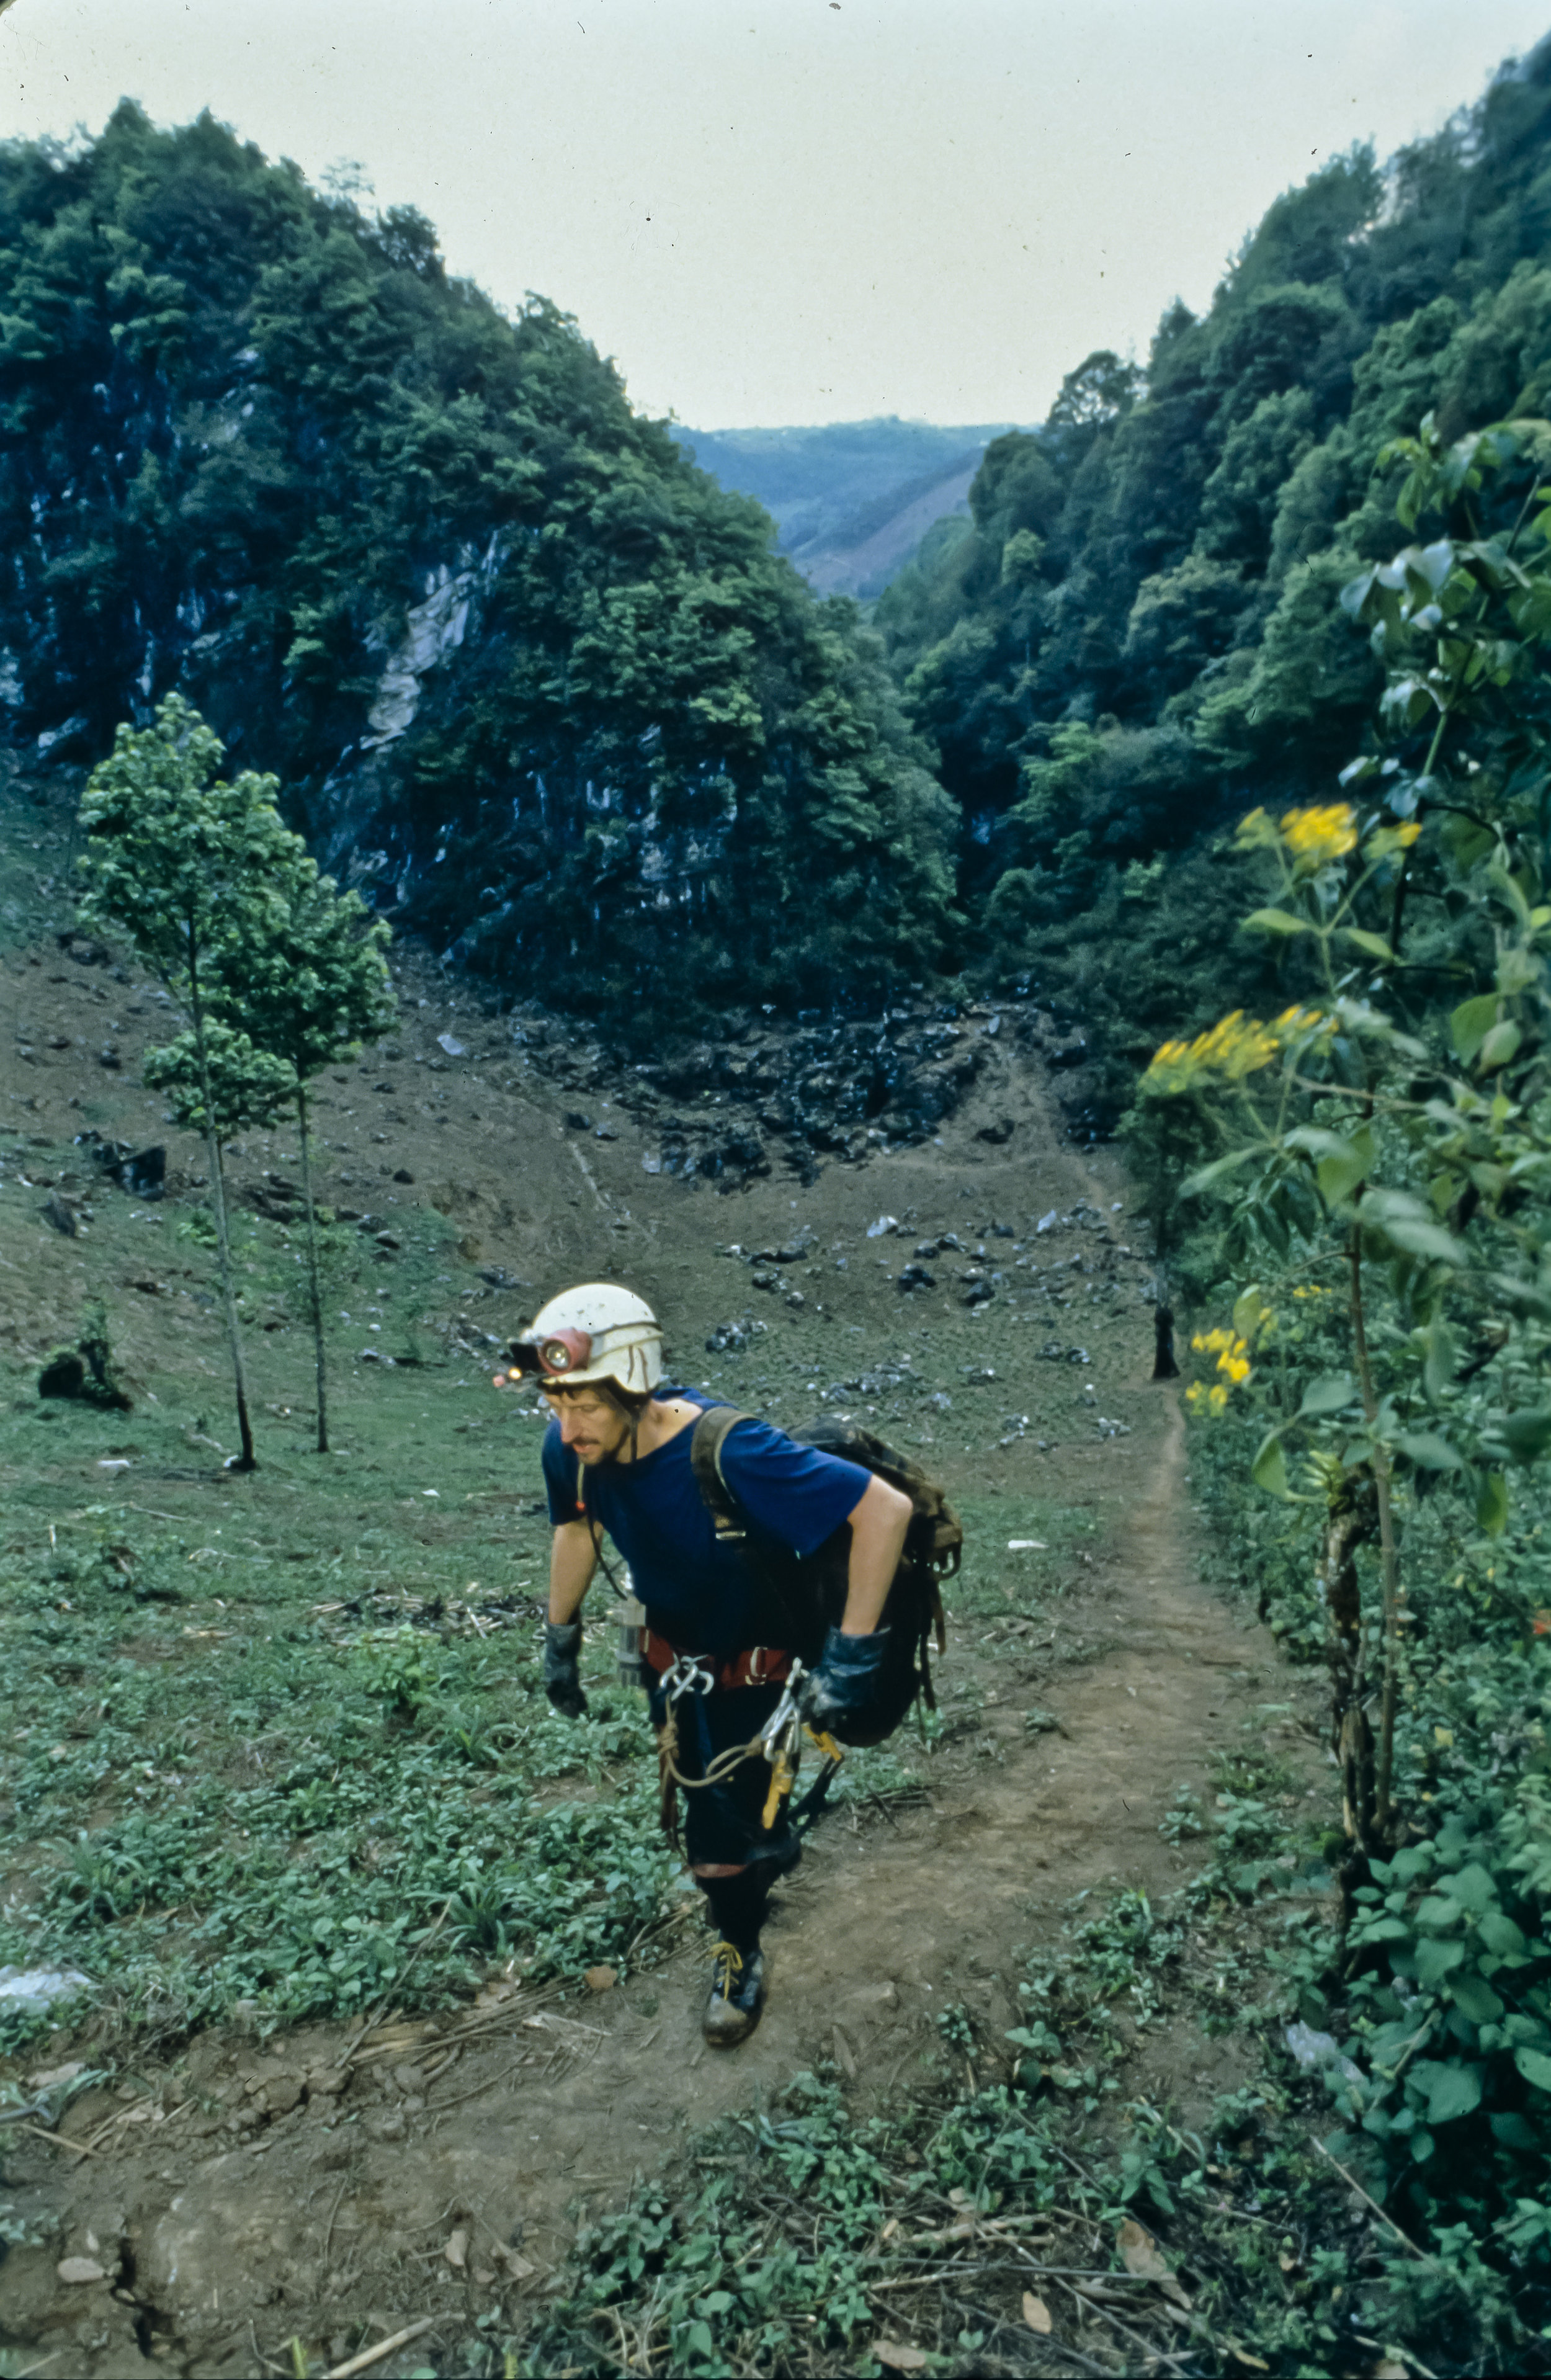 Bill Stone makes his way up the caver trail from the entrance of the Sotano de San Agustin to basecamp. Photo by U. S. Deep Caving Team/Wes Skiles.